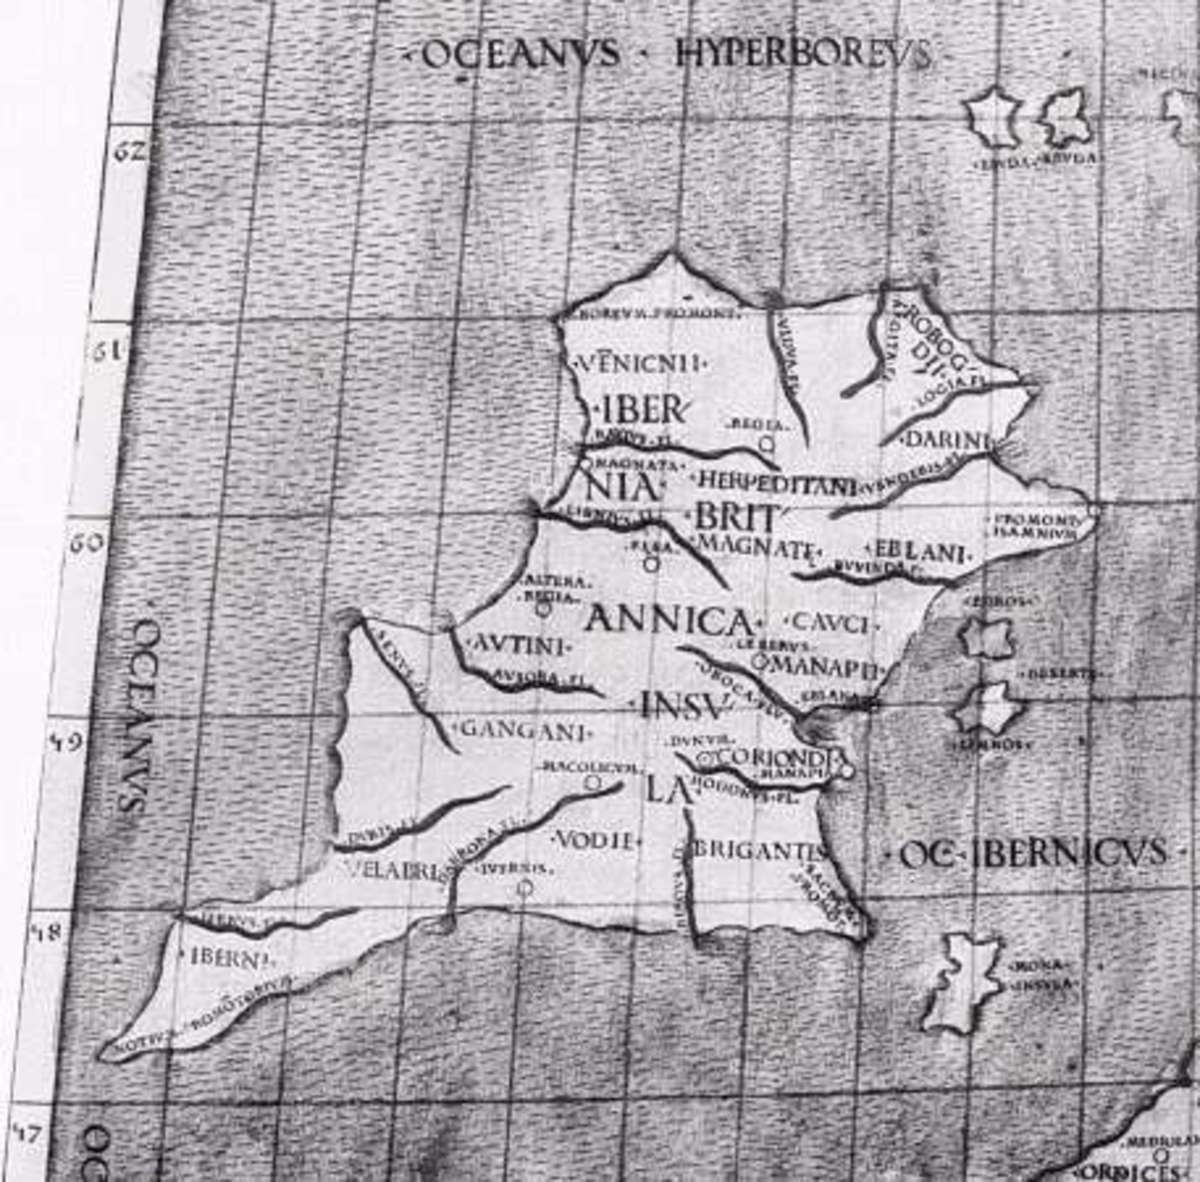 Ptolemy's map of Ireland, the regional names in Latin Roman script